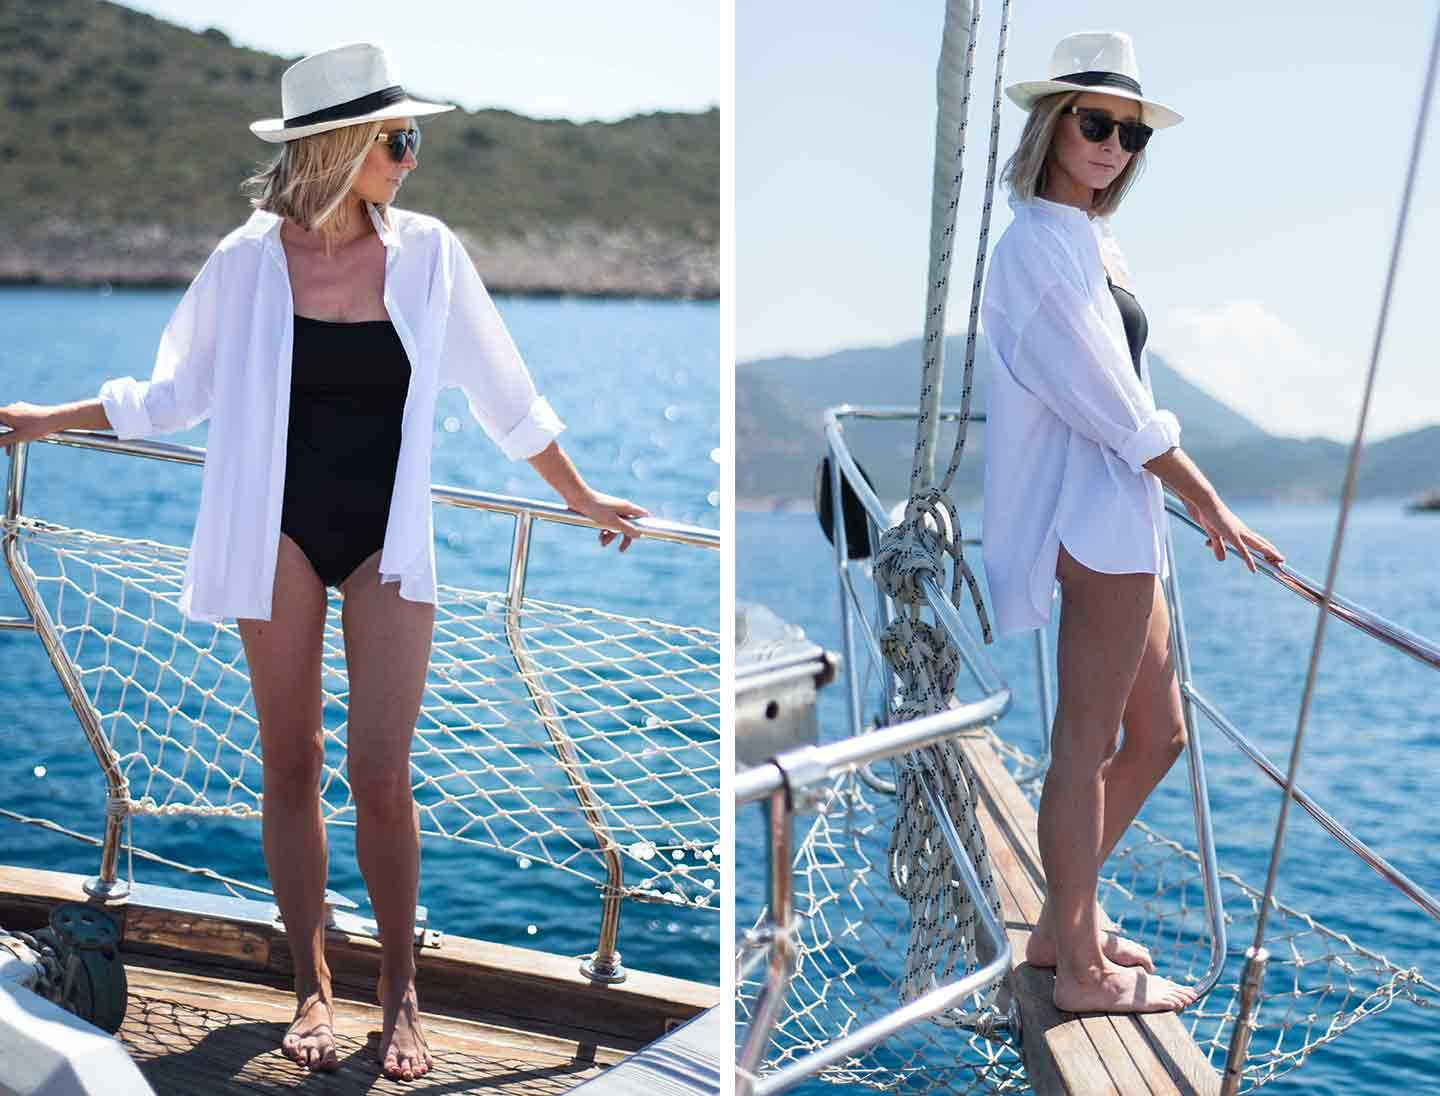 Woman on a boat with sea surrounding wearing a black swimsuit sunglasses a hat and open white shirt